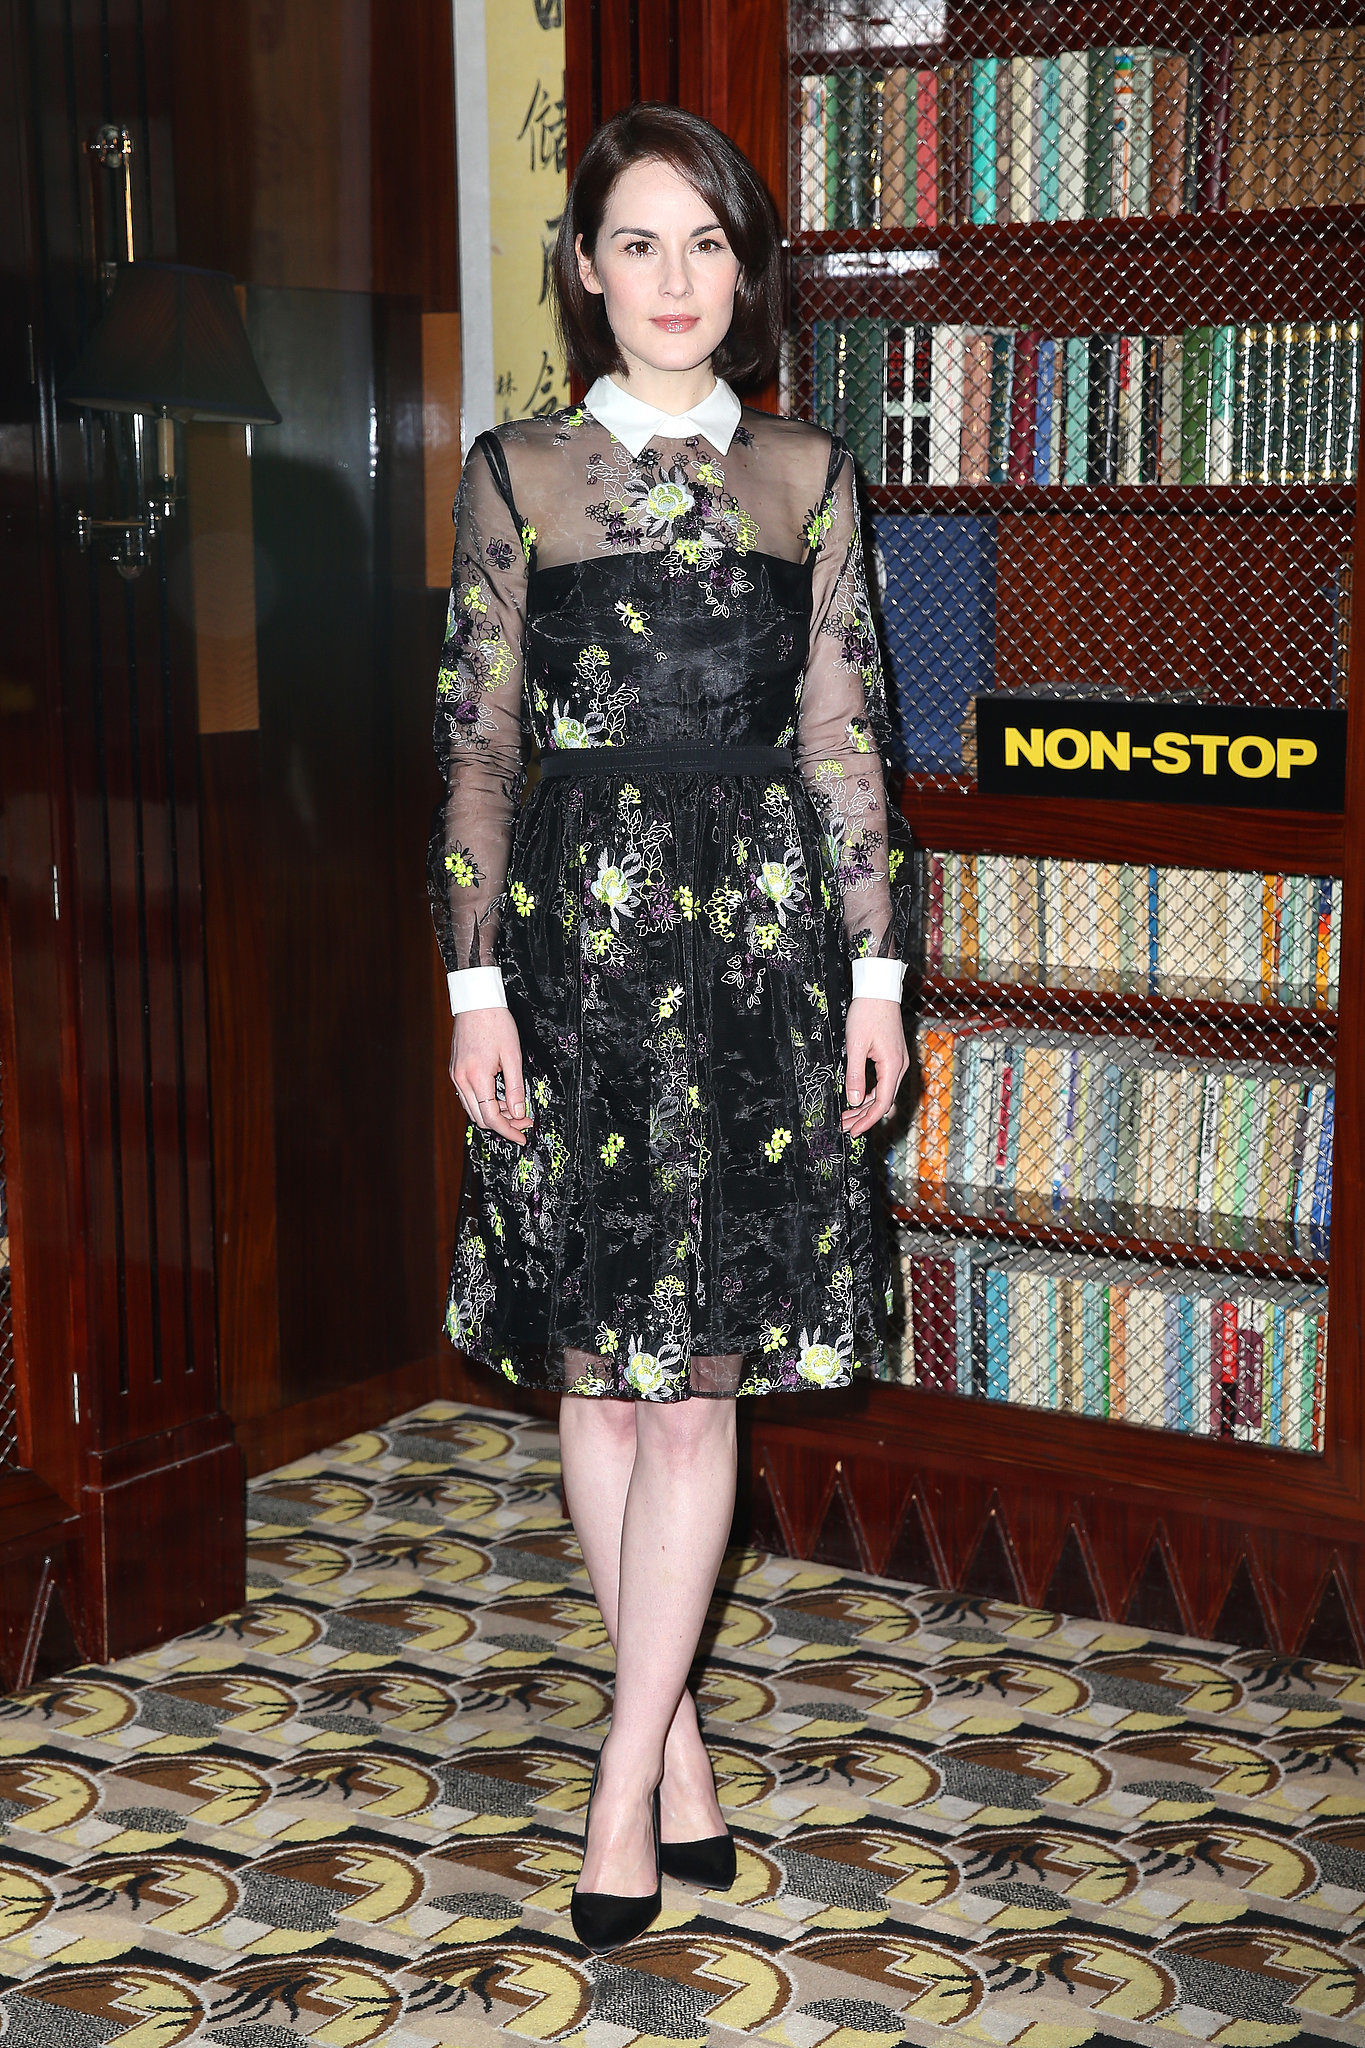 Michelle Dockery at a Non-Stop Press Event